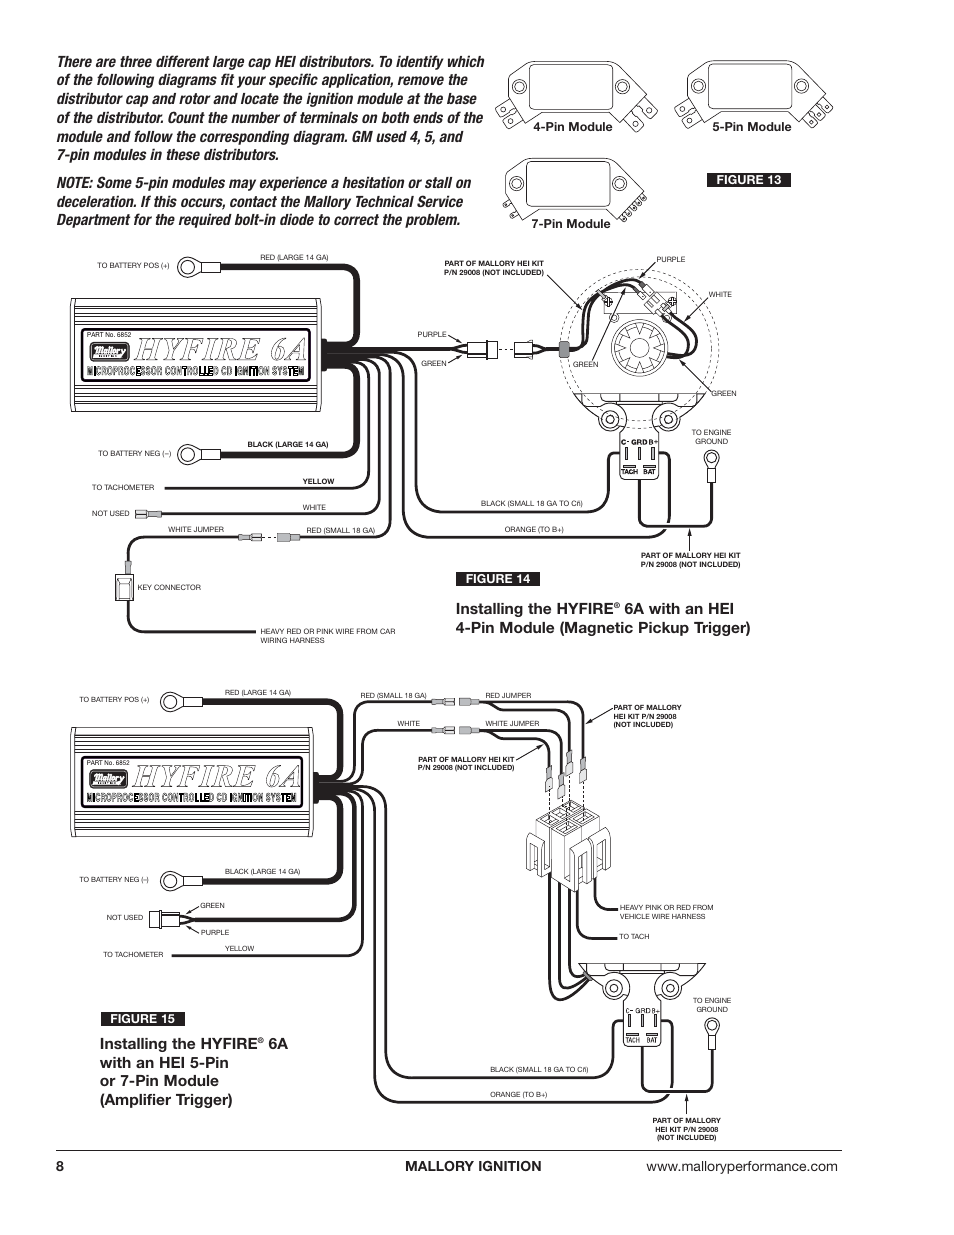 mallory ignition mallory hyfire 6a and 6al series electronic ignition controls 6852m_6853m page8?resize=665%2C861 mallory ivc wiring diagram conventional fire alarm wiring diagram  at mifinder.co